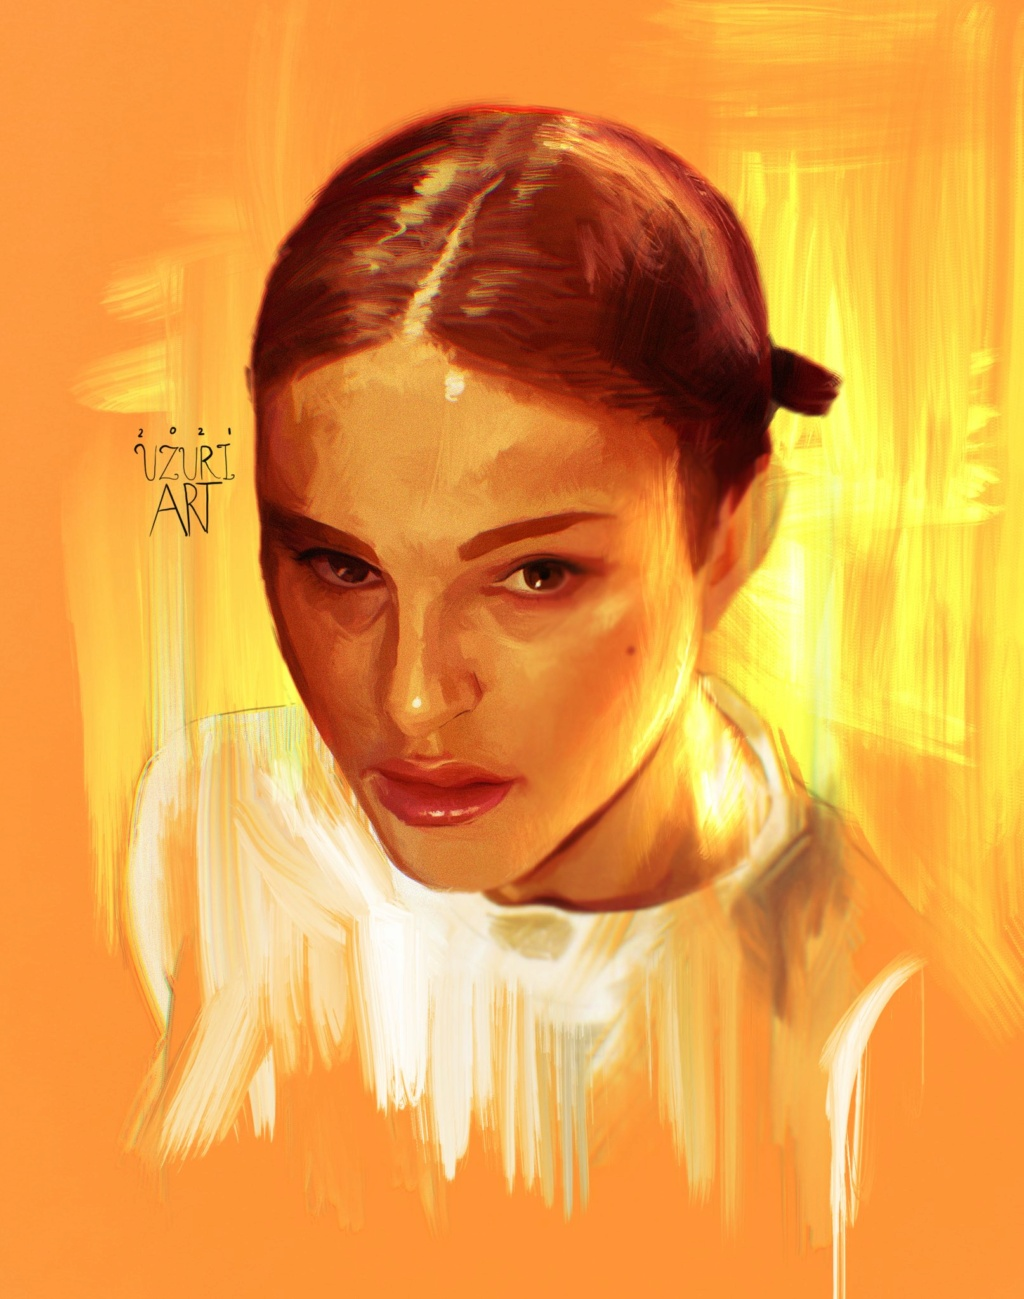 Digital Art par UZURI ART - Star Wars Uzuri_30